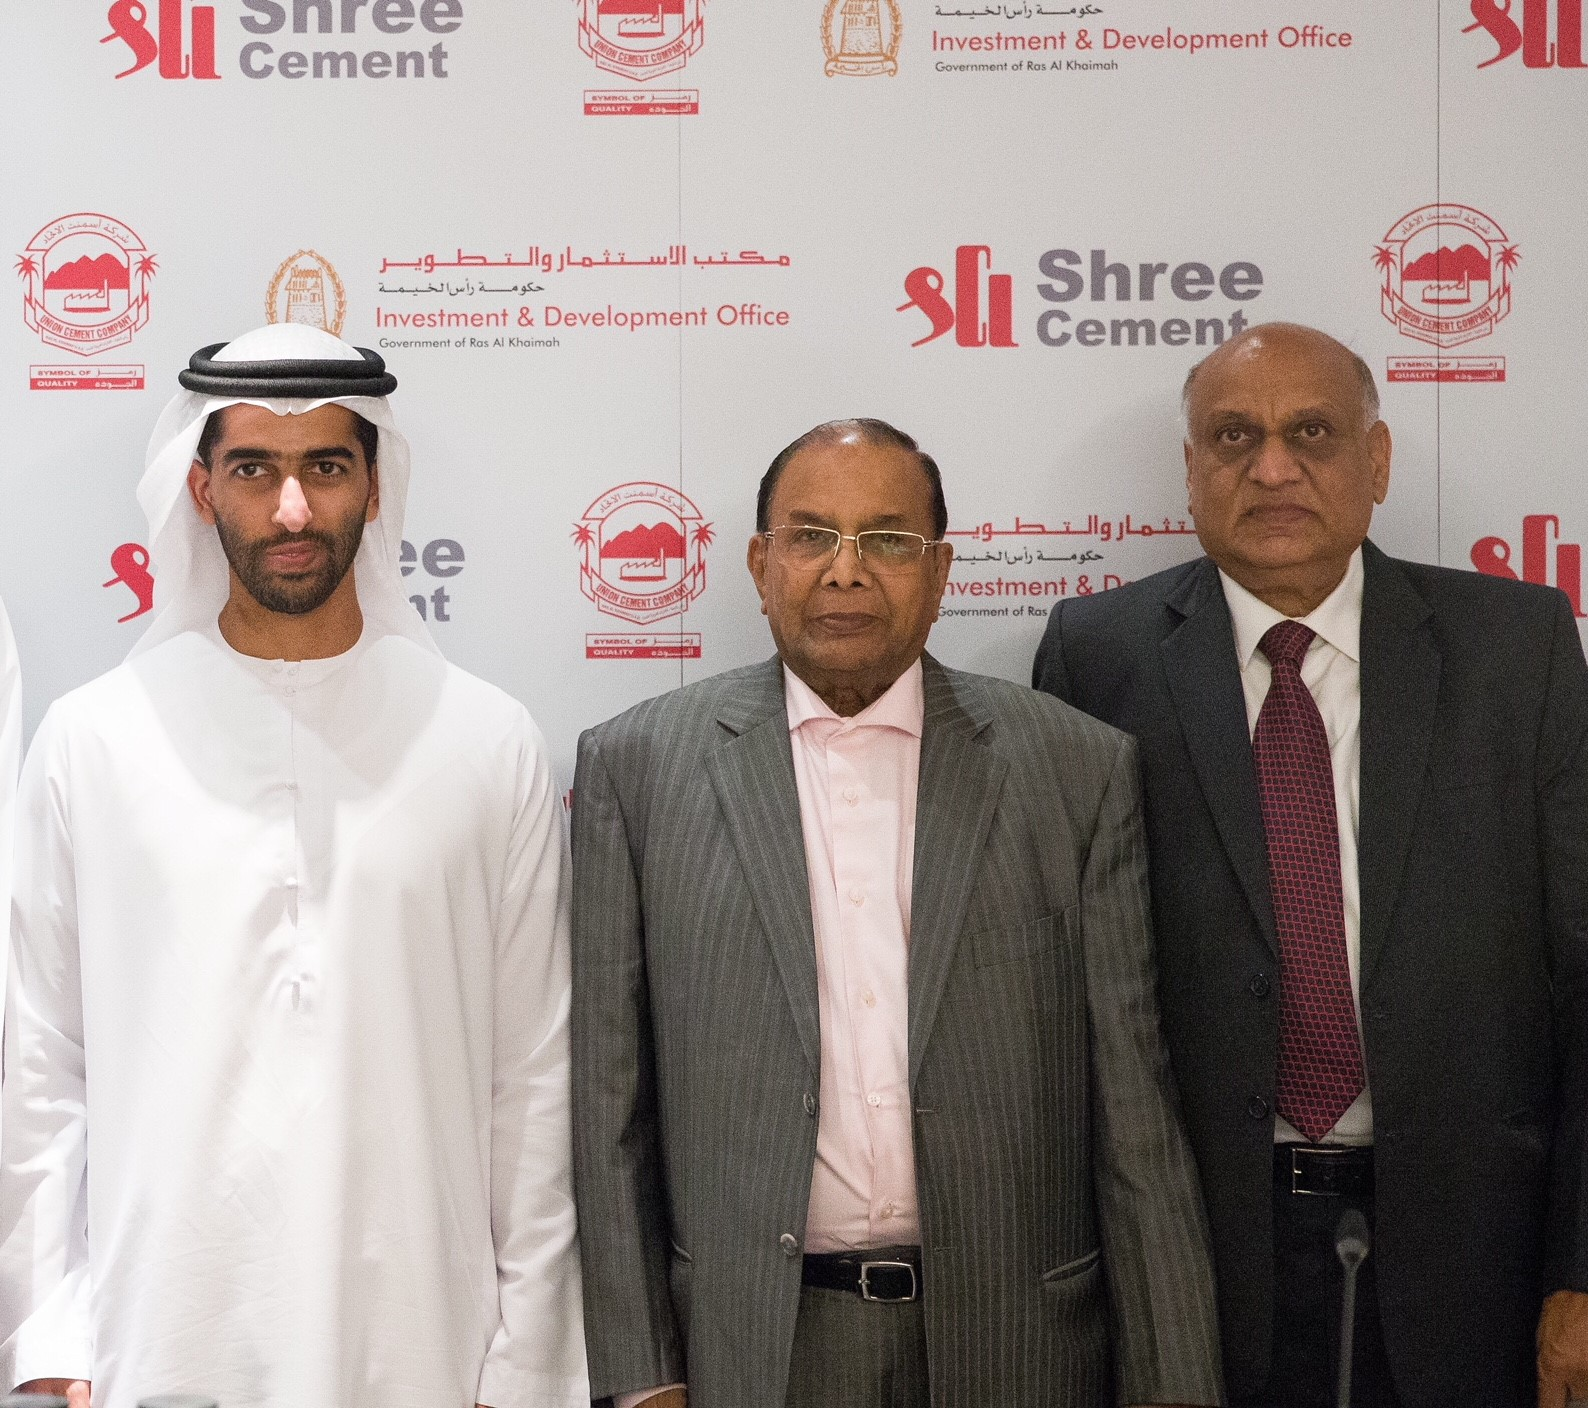 rak investment and development office completes fdi transaction with indian cement giant